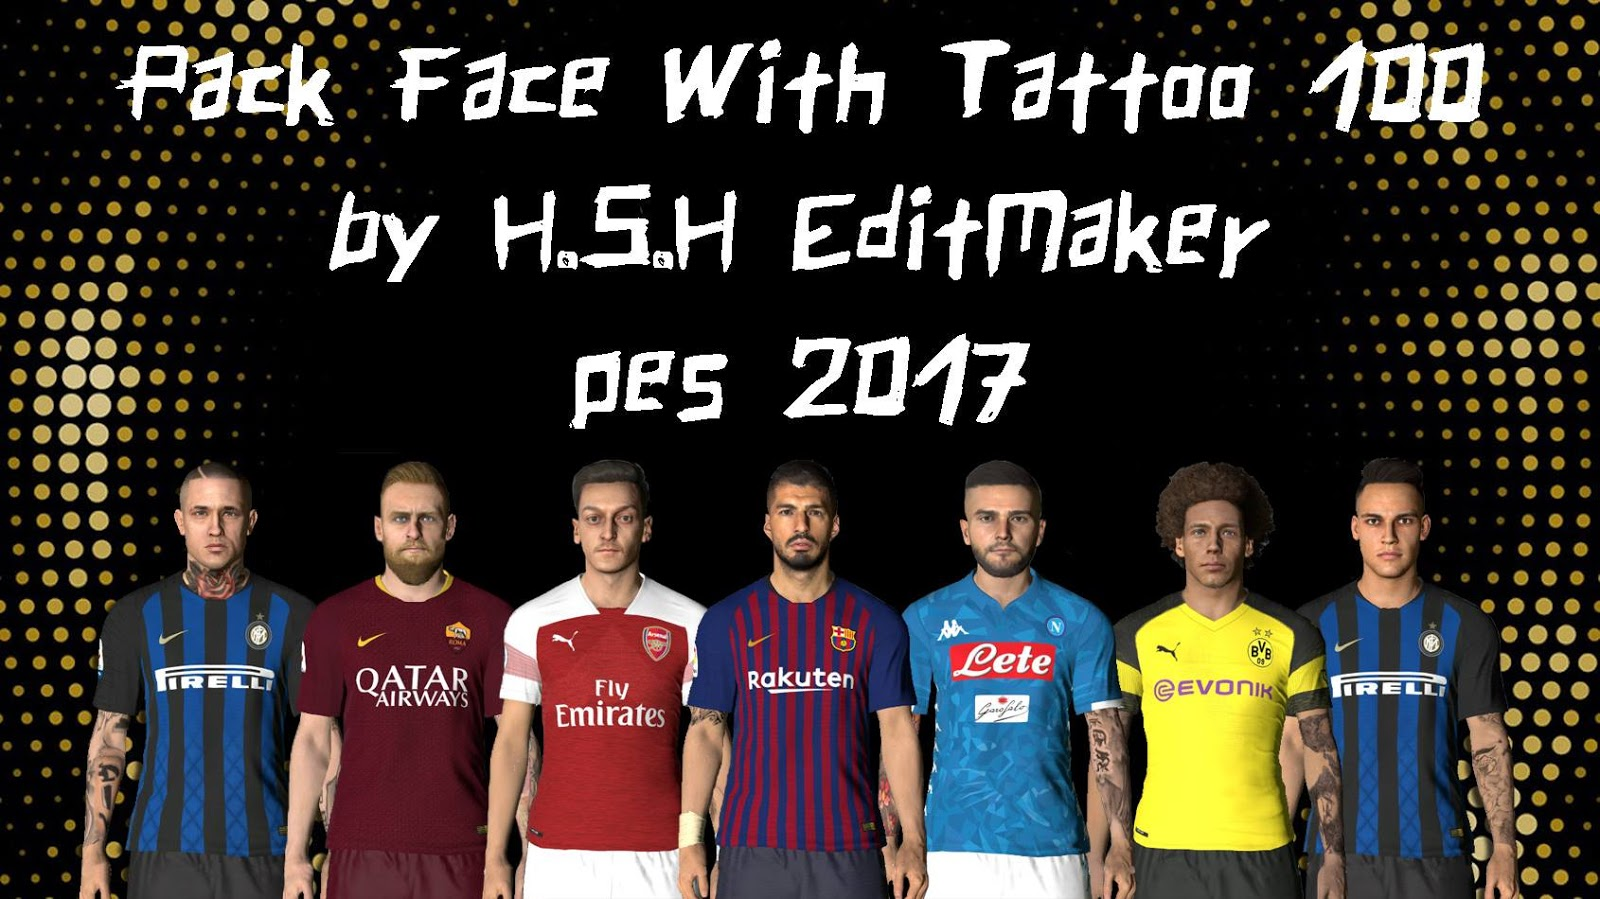 Pack Face With Tattoo 100 PES 2017 by H.S.H EditMaker